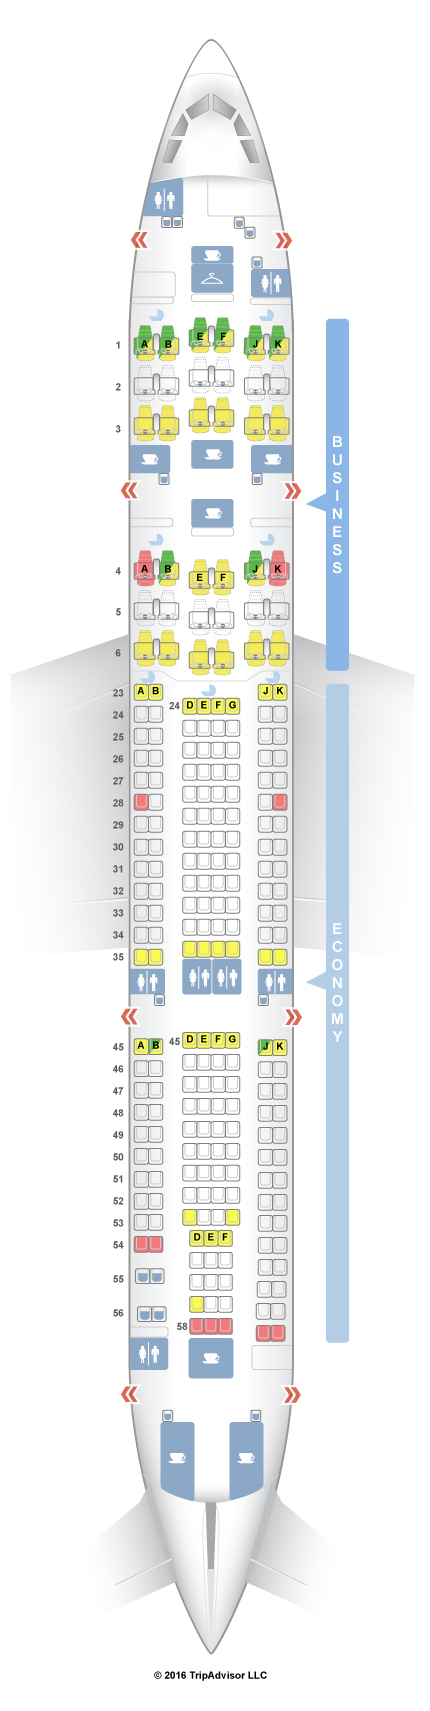 Qantas A330 200 Best Economy Seats - Best Description About Economy on